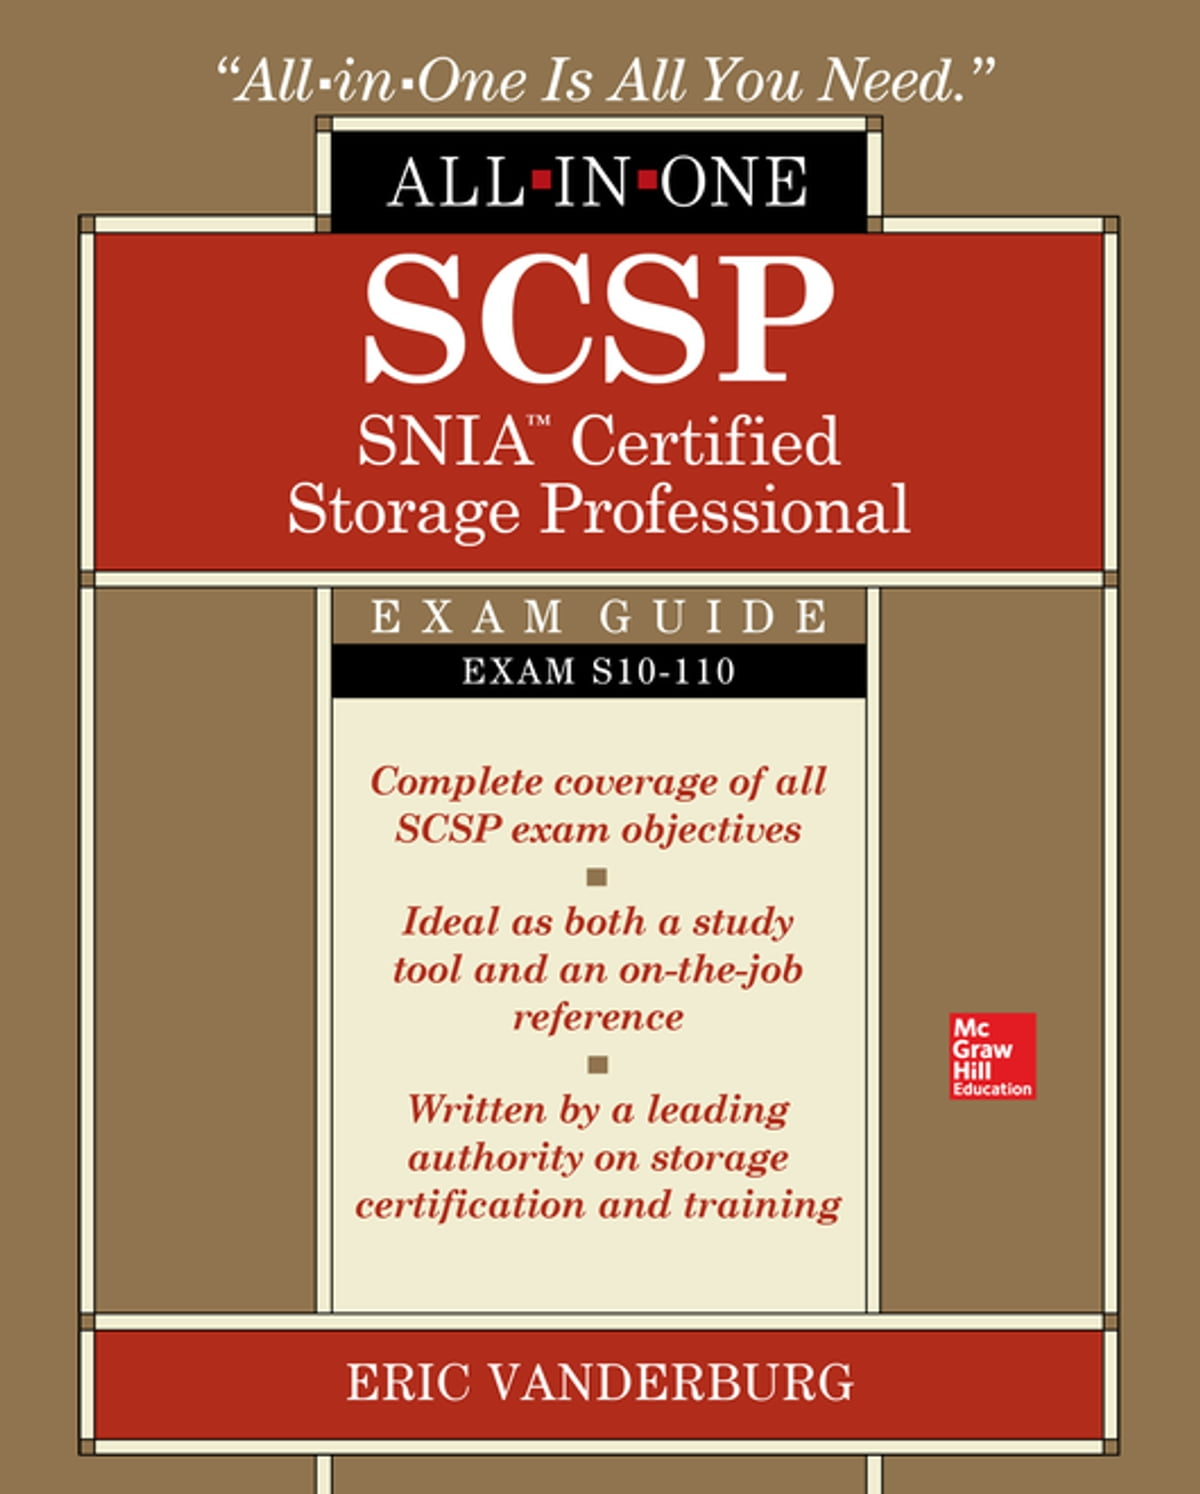 Scsp Snia Certified Storage Professional All In One Exam Guide Exam